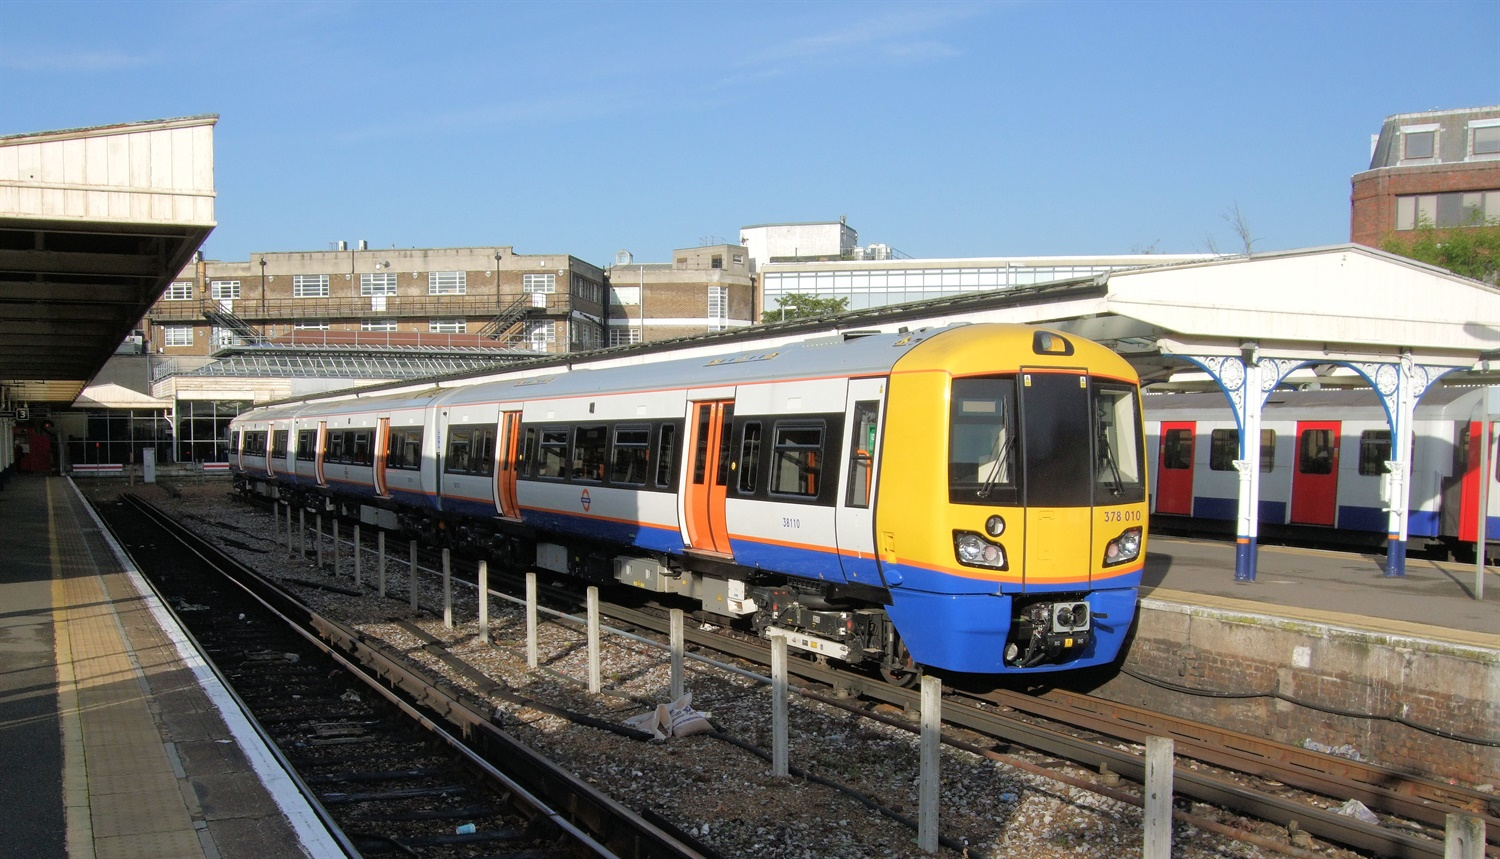 Bombardier wins contract to build new London Overground fleet